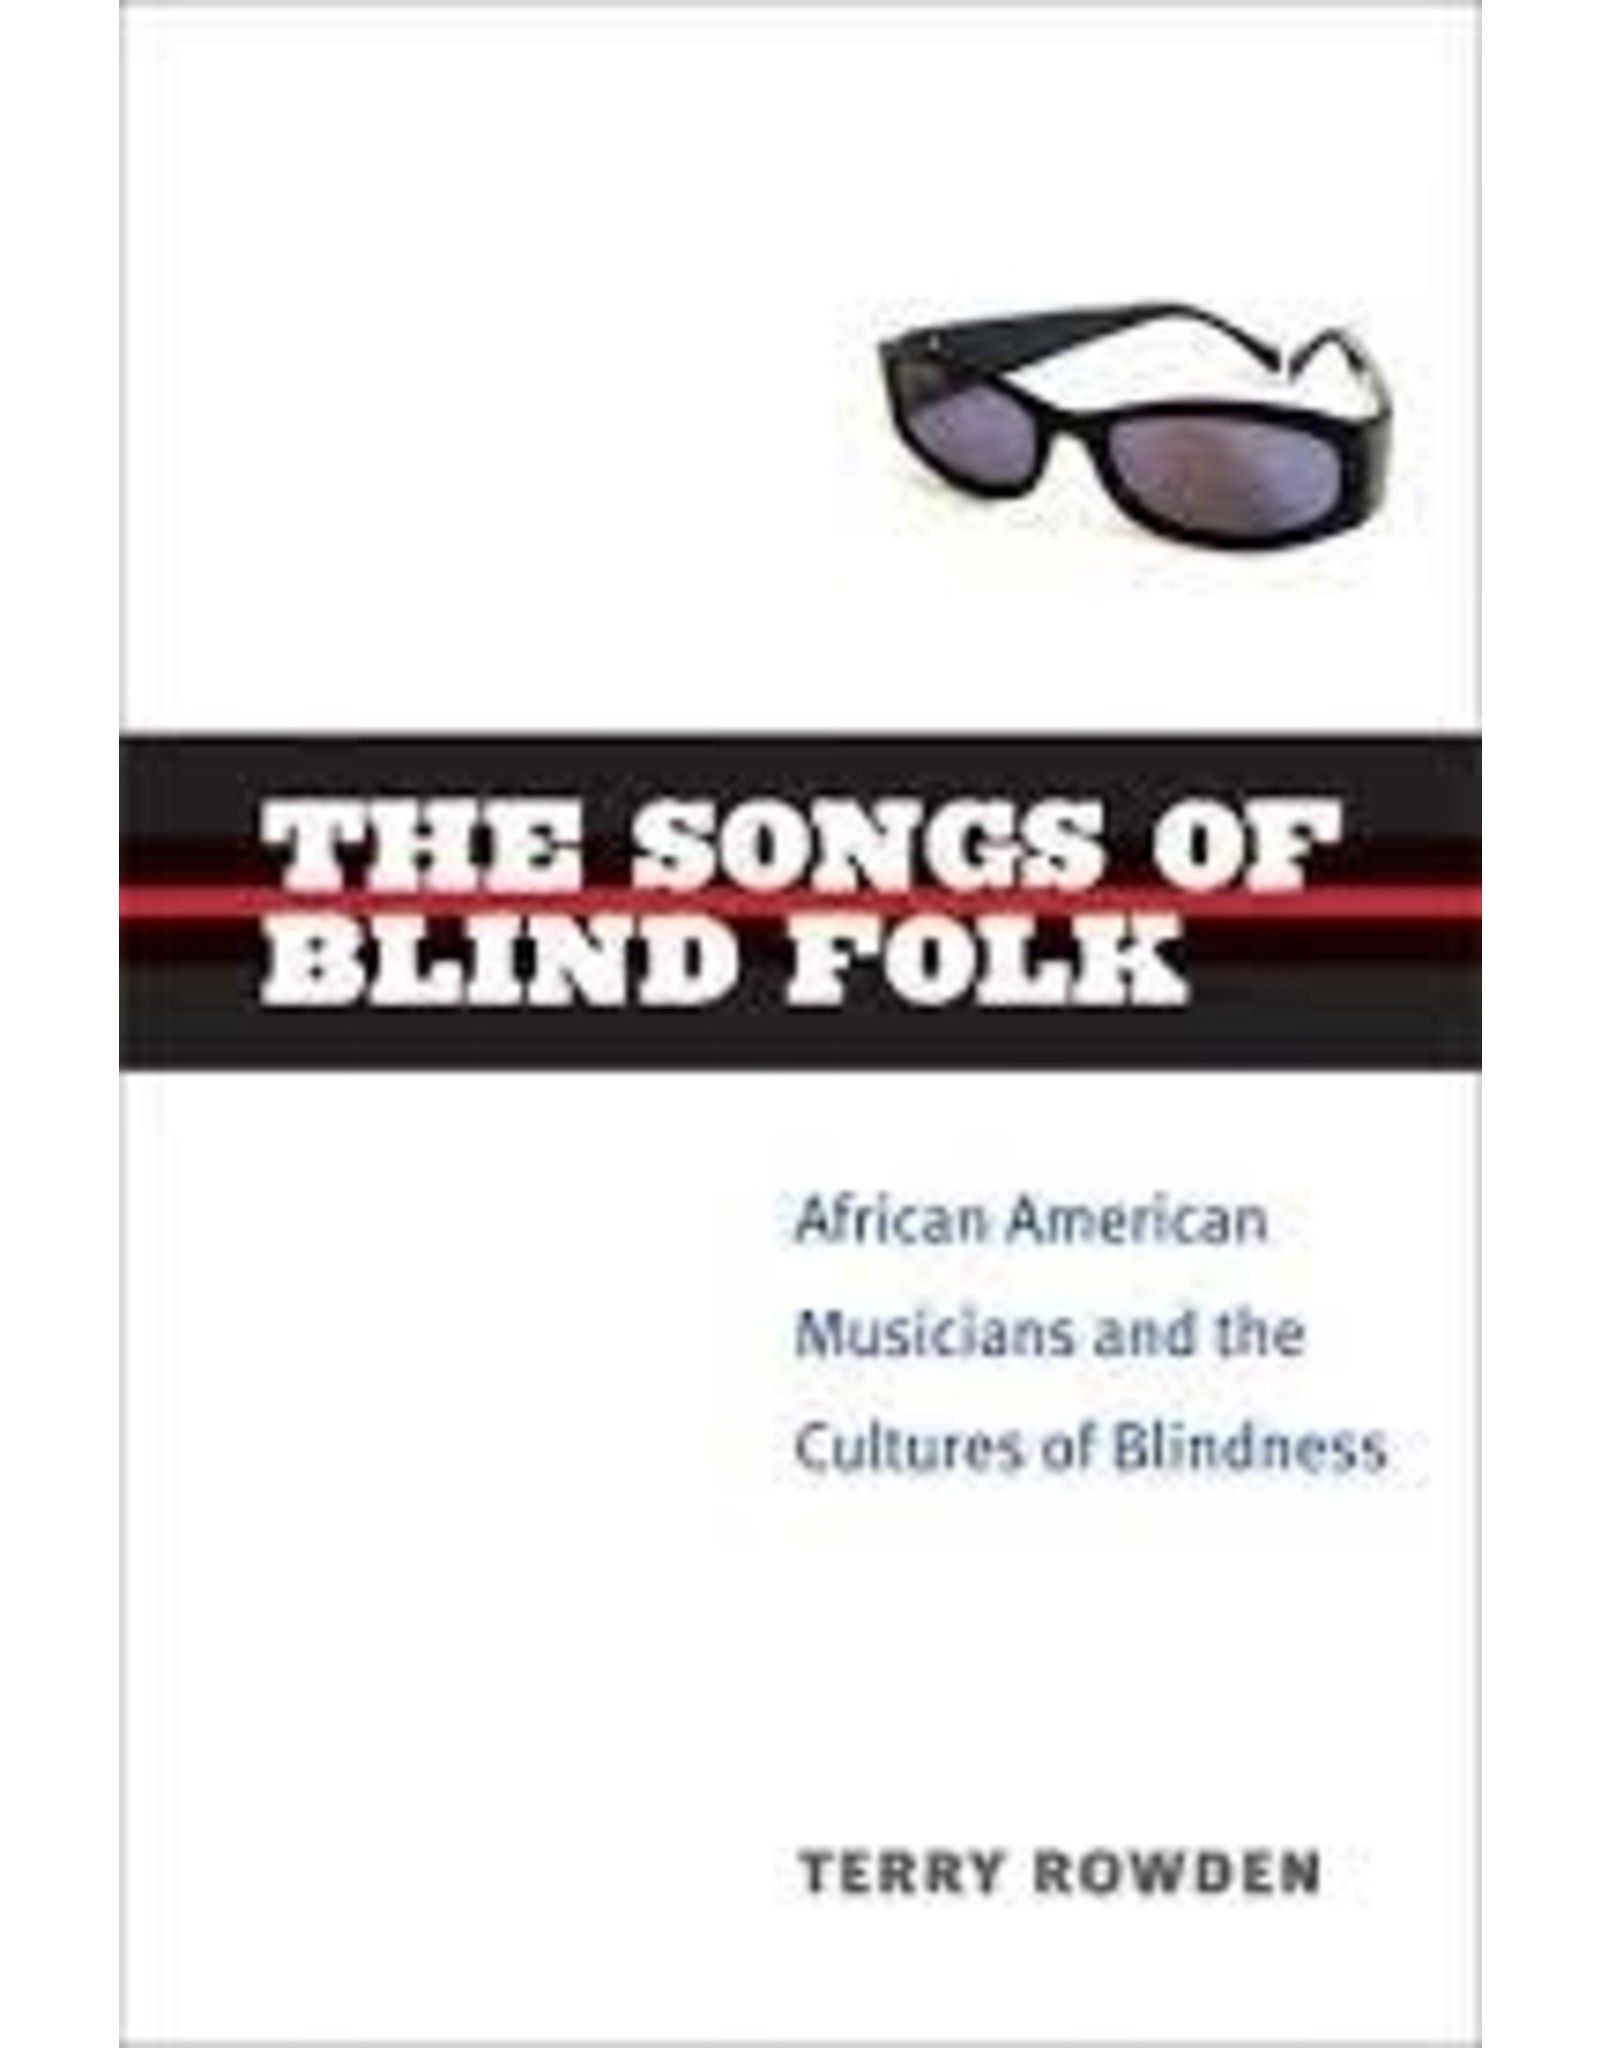 Books The Songs Of Blind FolksTerry Rowden (DRLC bookclub)